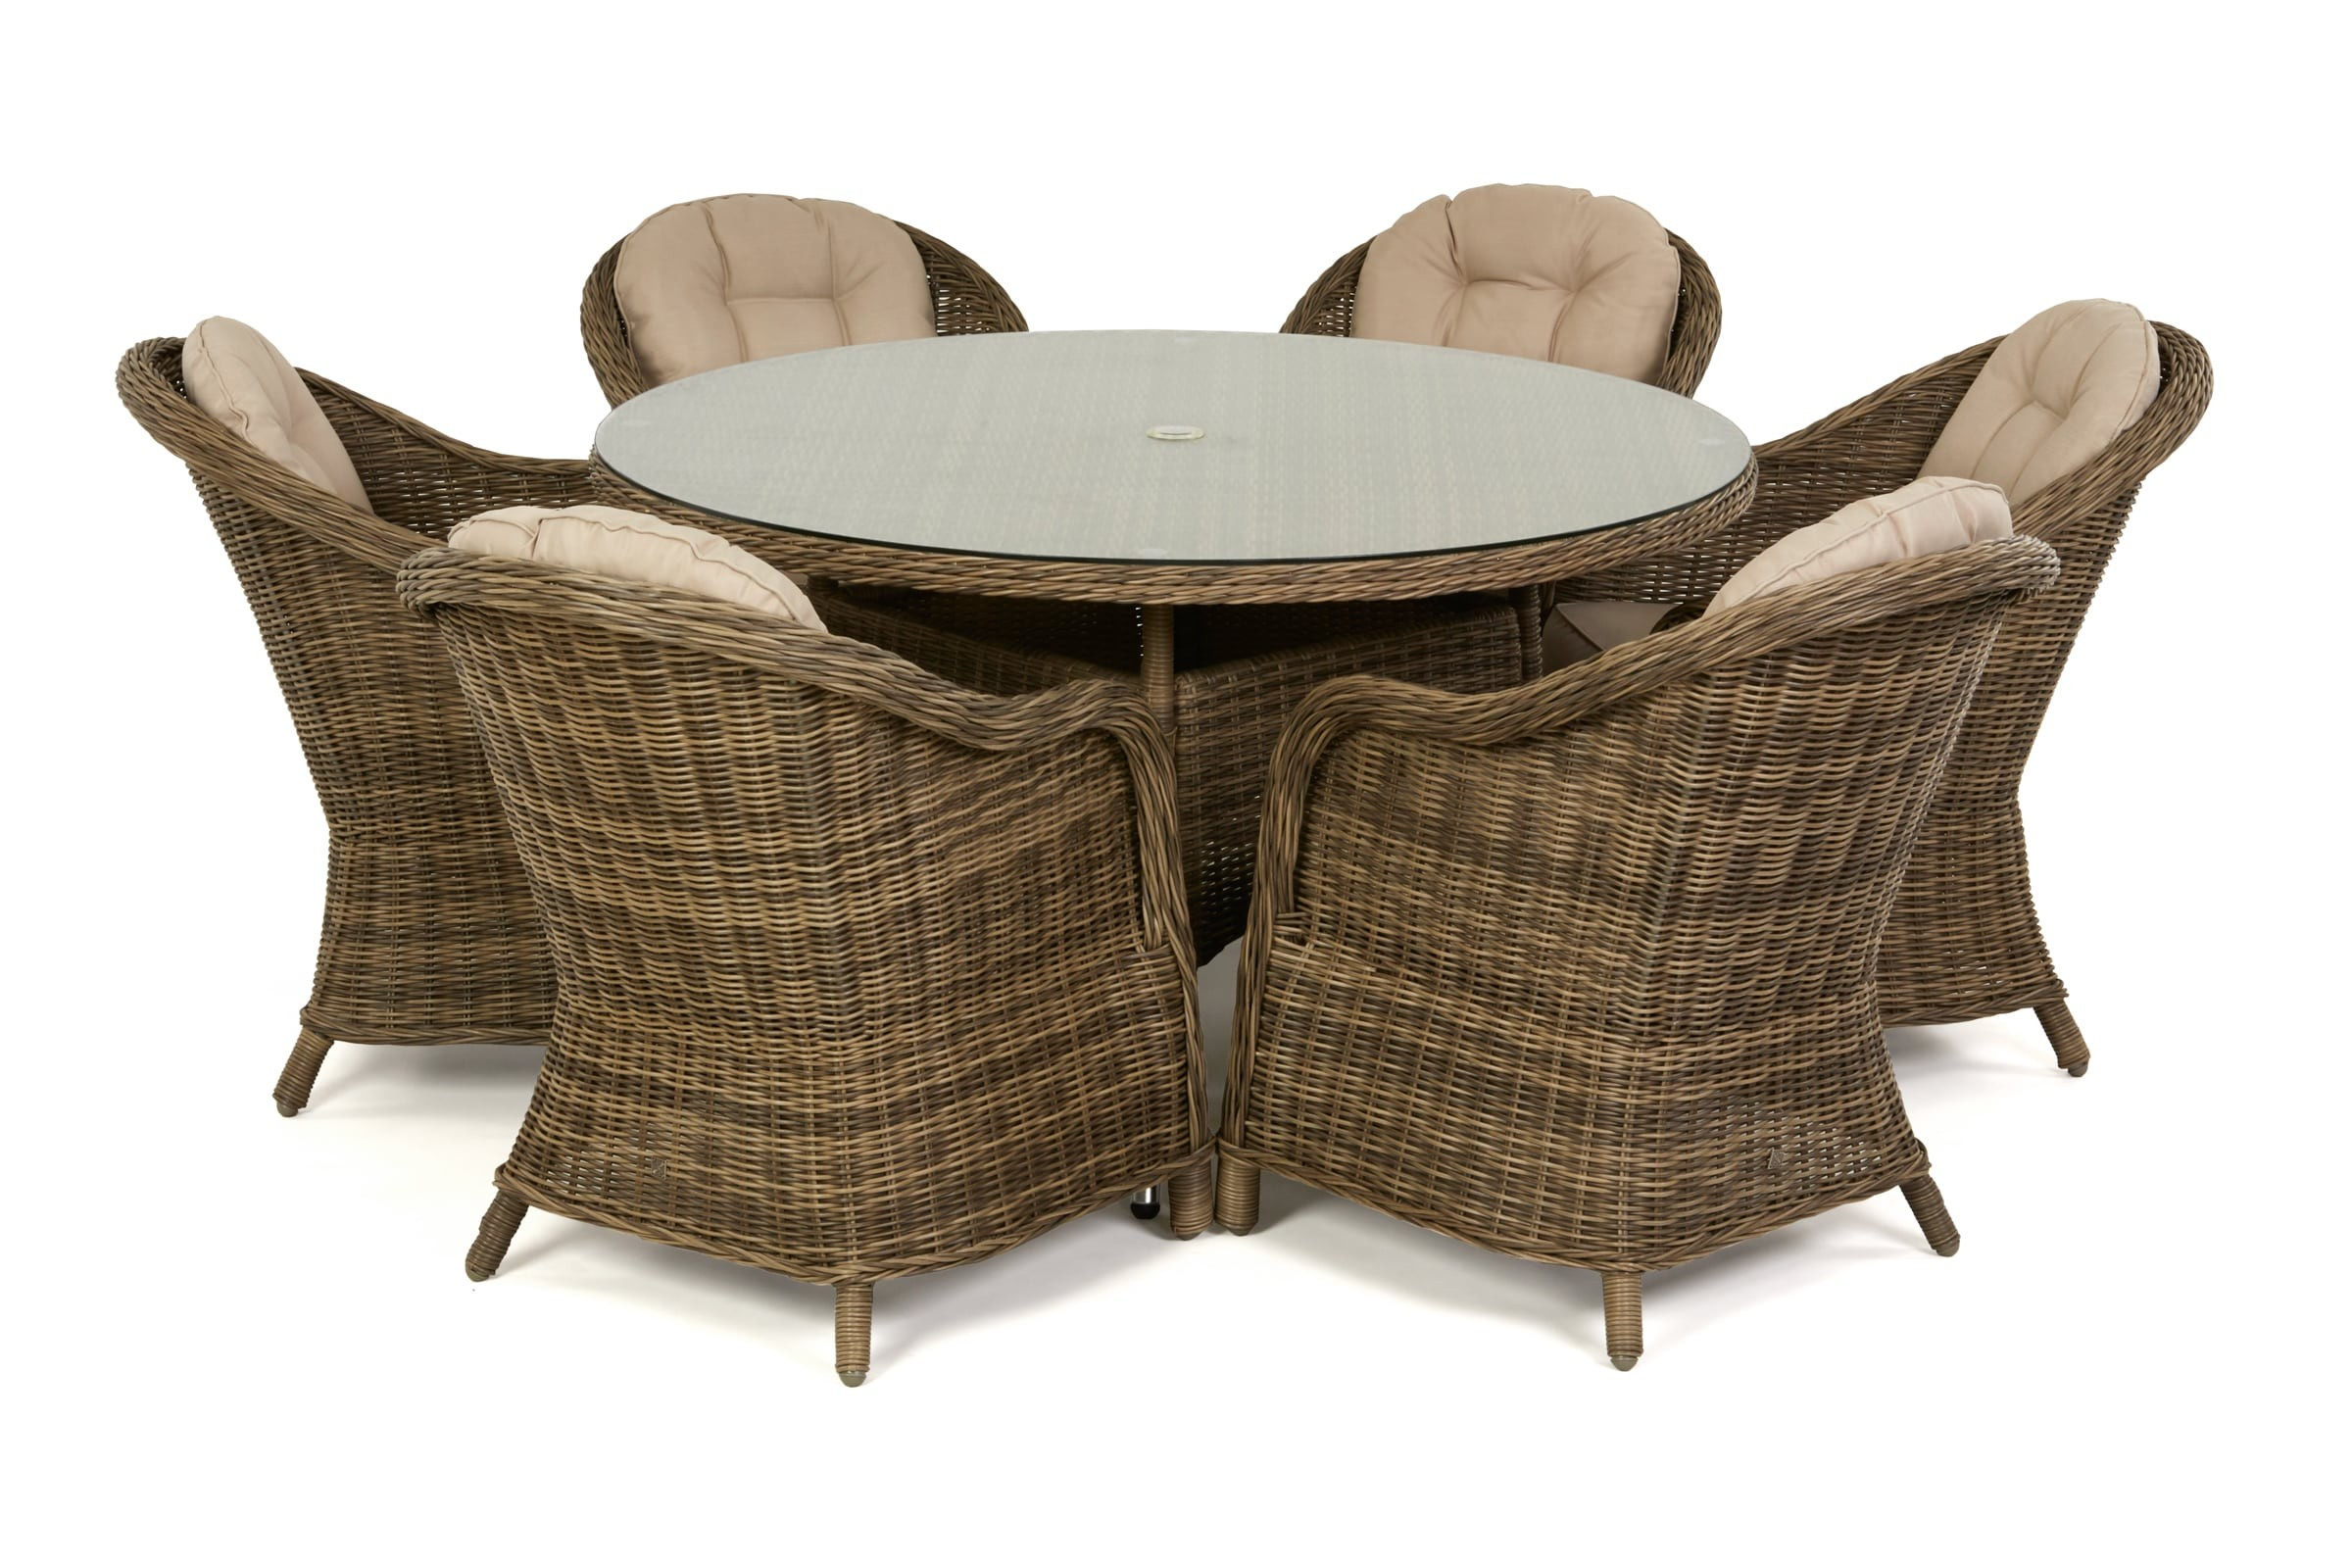 Maze rattan Winchester 6 seat Round Rattan garden Furniture Set | Rattan Furniture Fairy